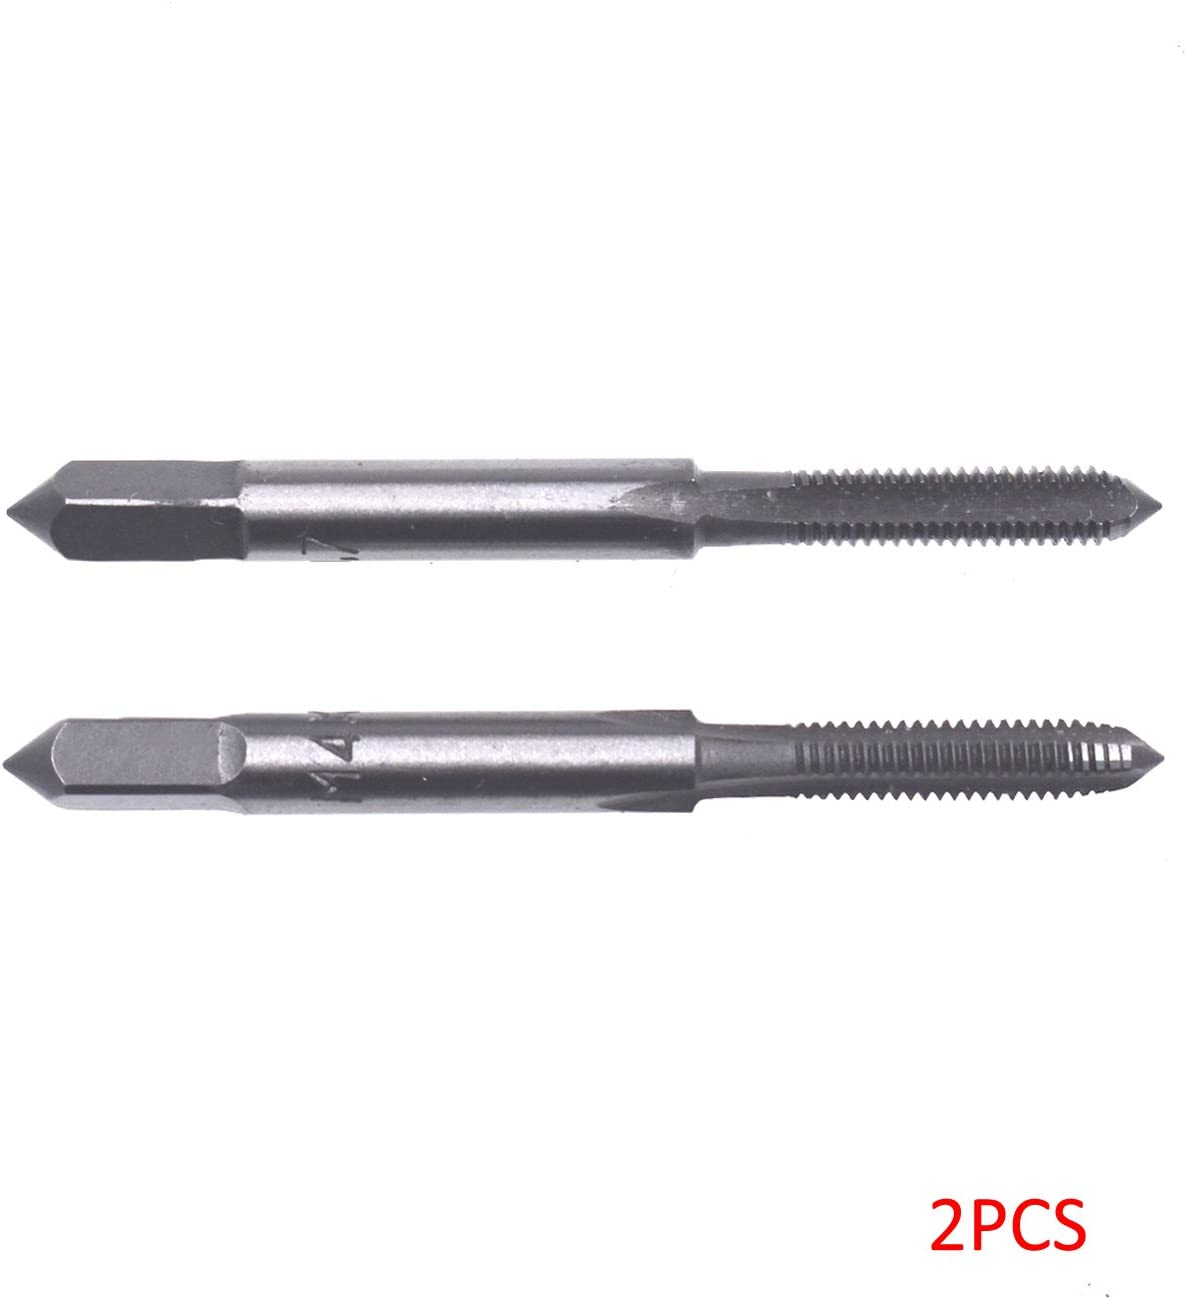 2pcs M12x1.75 Straight Fluted Screw Metric Hand Tap For Metalworking